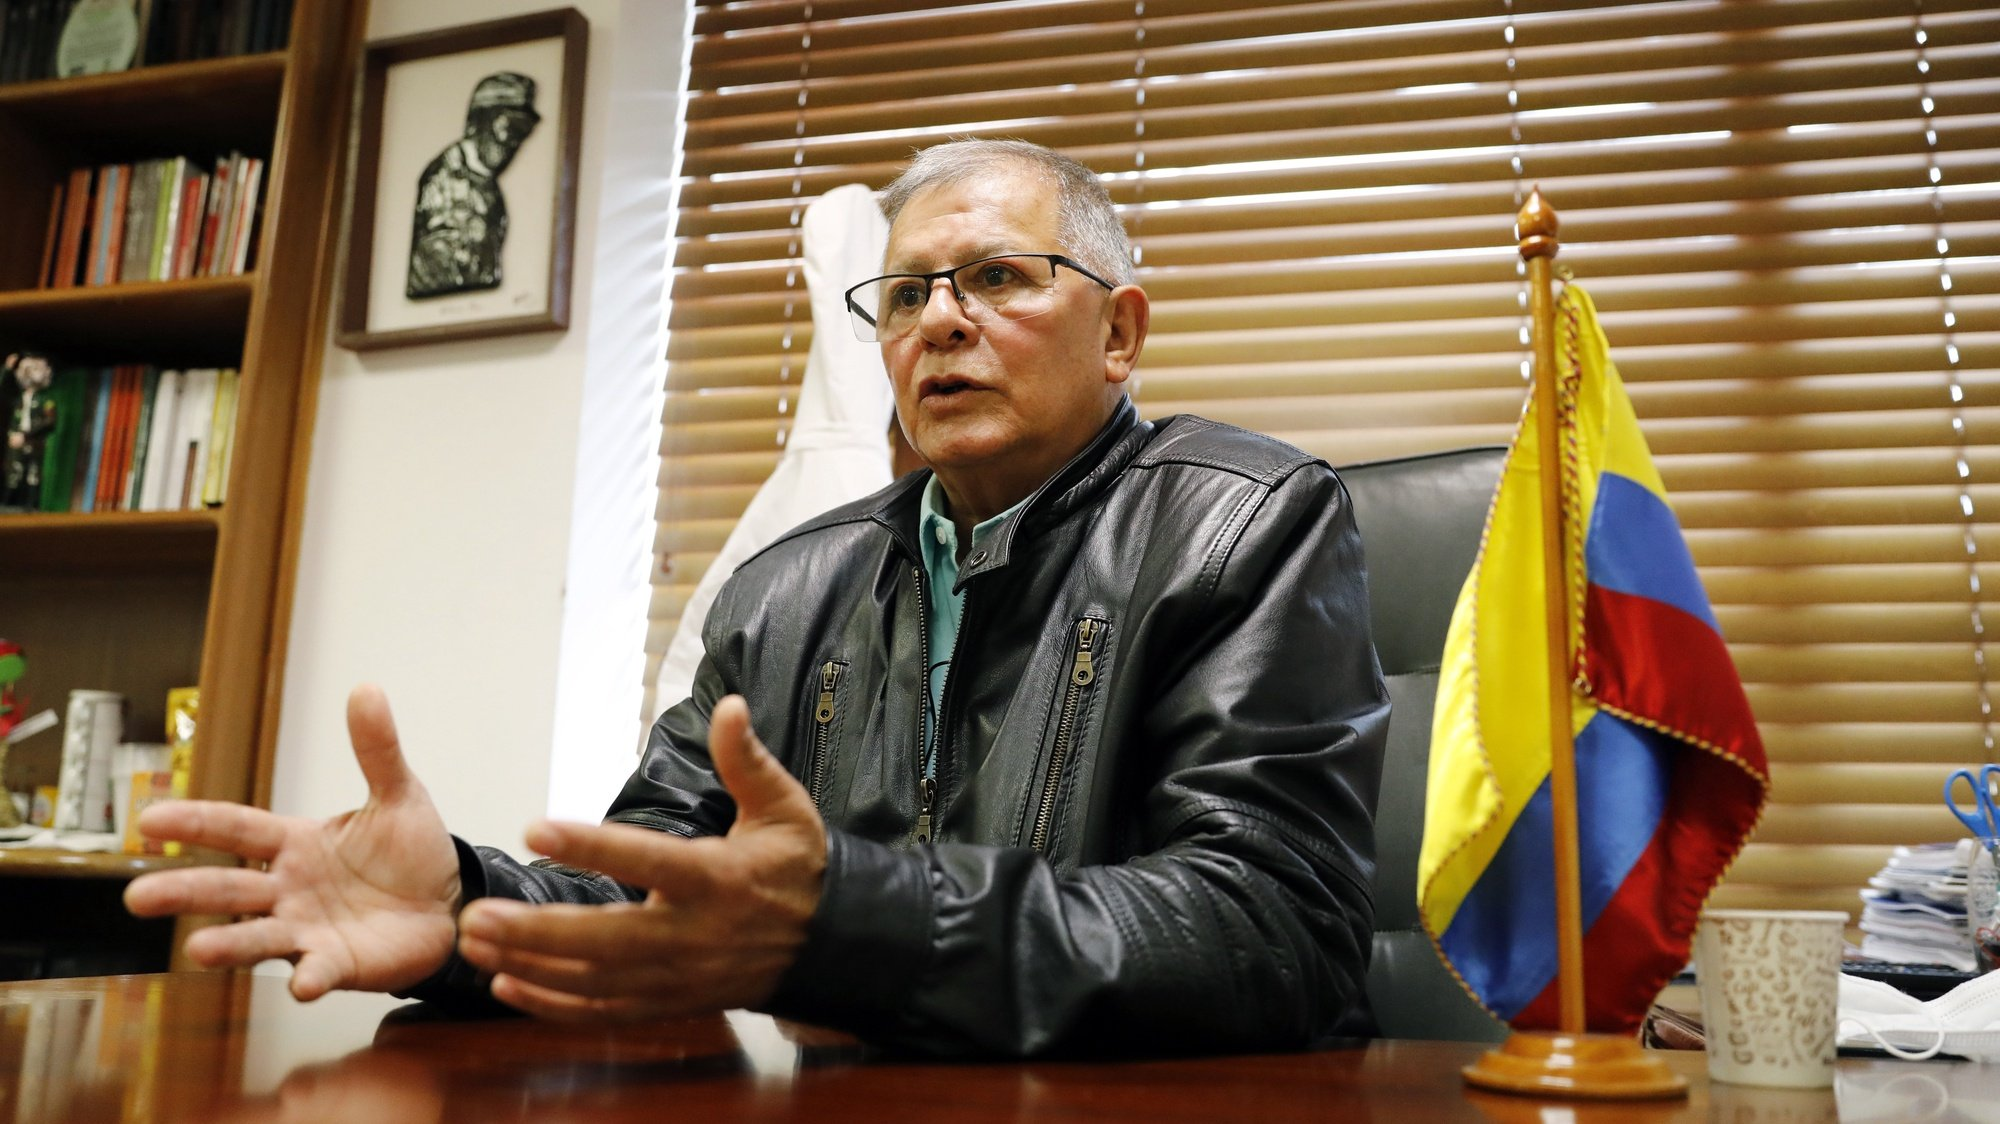 epa08836075 Former guerrilla chief Rodrigo Granda speaks with Efe during an interview in Bogota, Colombia, 19 November 2020 (issued 22 November). The murder of former FARC guerrillas, which has claimed the lives of 243 of them, and the legal insecurity for those who laid down their arms are the main shadows that loom over the Colombian peace agreement signed four years ago, says the former chief guerrilla Rodrigo Granda. 'A vital point for us, such as (that of) security guarantees, does not exist. At this time we already have 243 assassinated from the new political movement,' Granda said.  EPA/Mauricio Duenas Castaneda